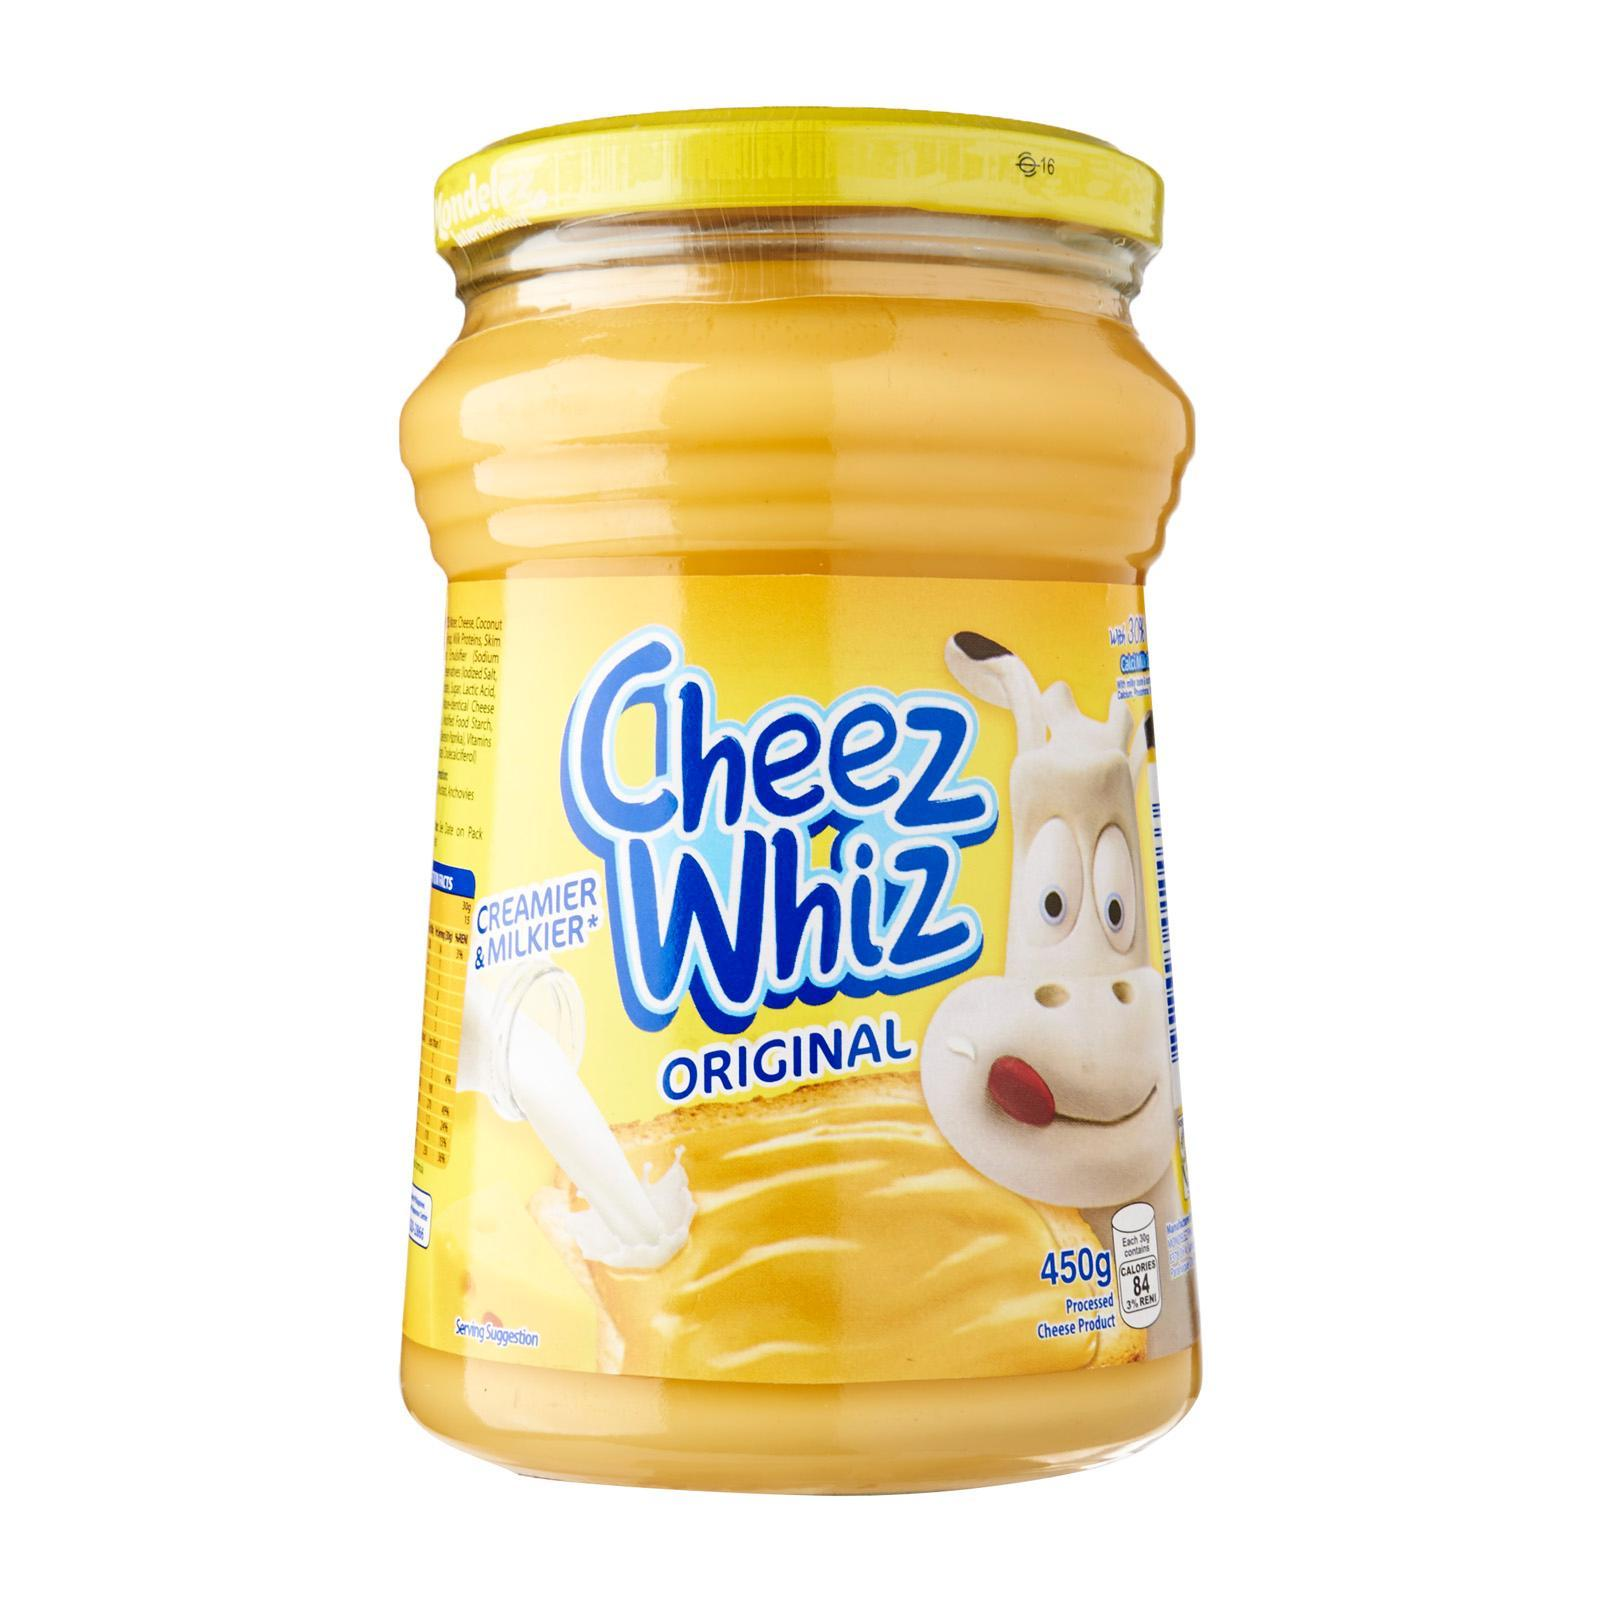 Cheez Whiz Original Cheese Spread